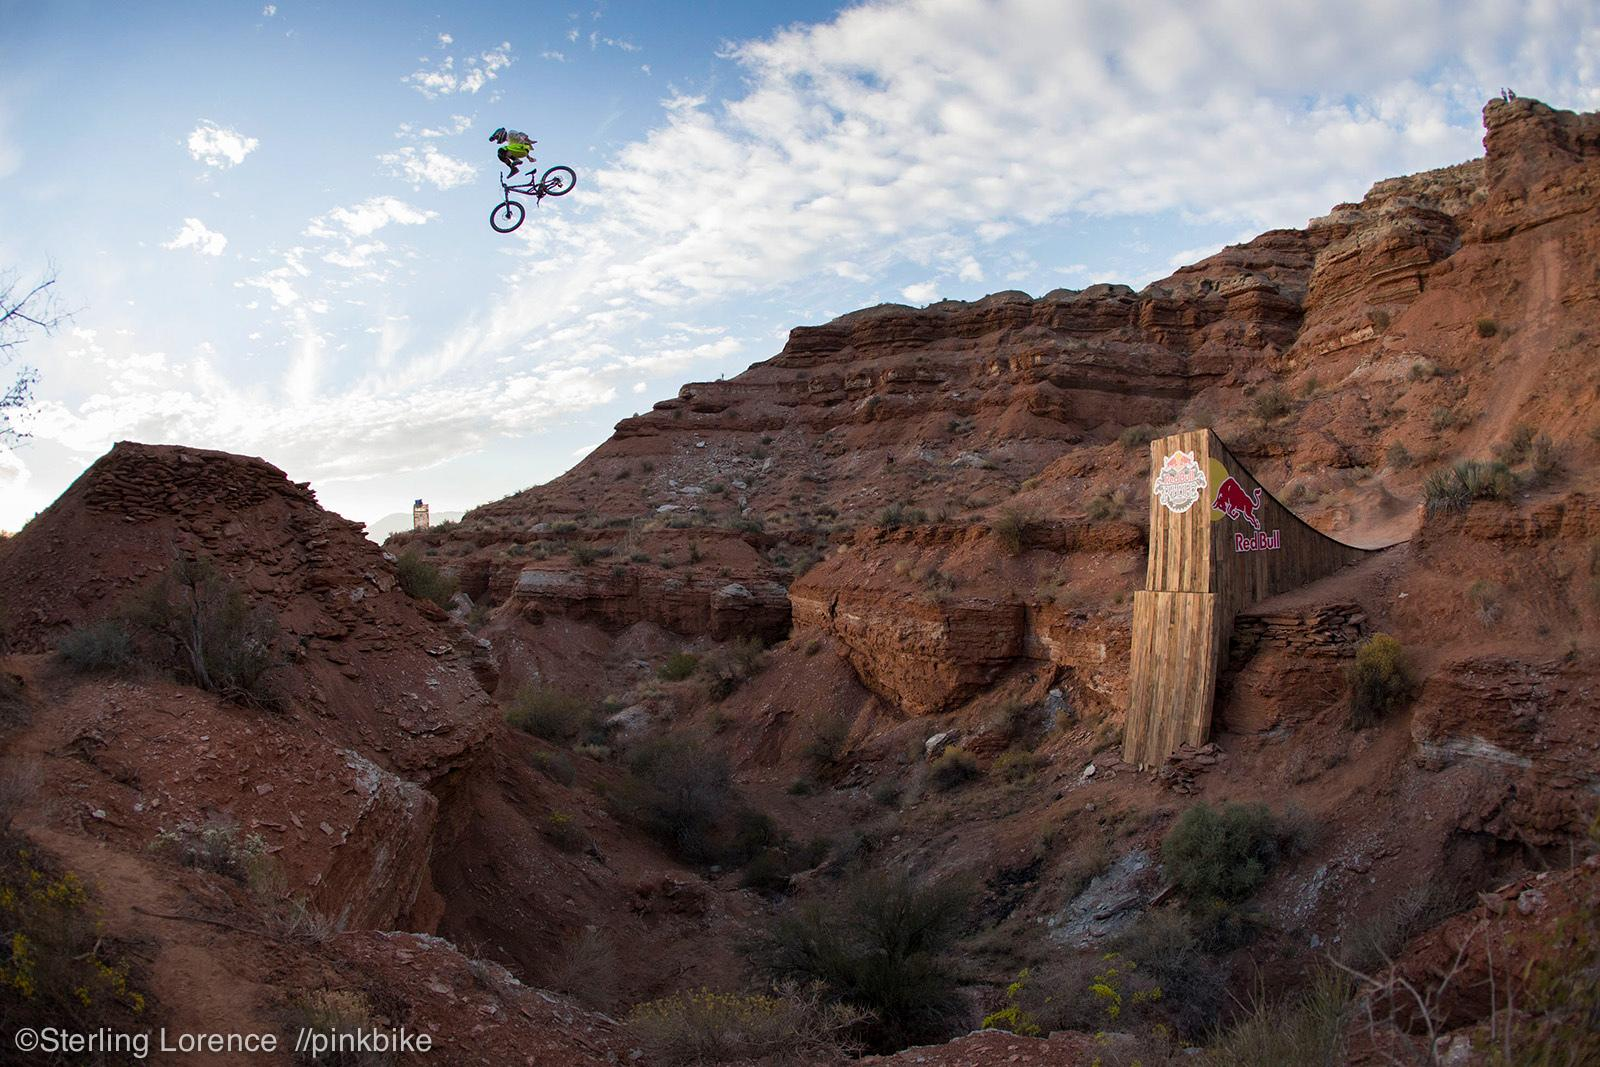 Cameron Zink at 2012 Redbull Rampage in Virgin, Utah, United States - photo by sterlinglorence - Pinkbike